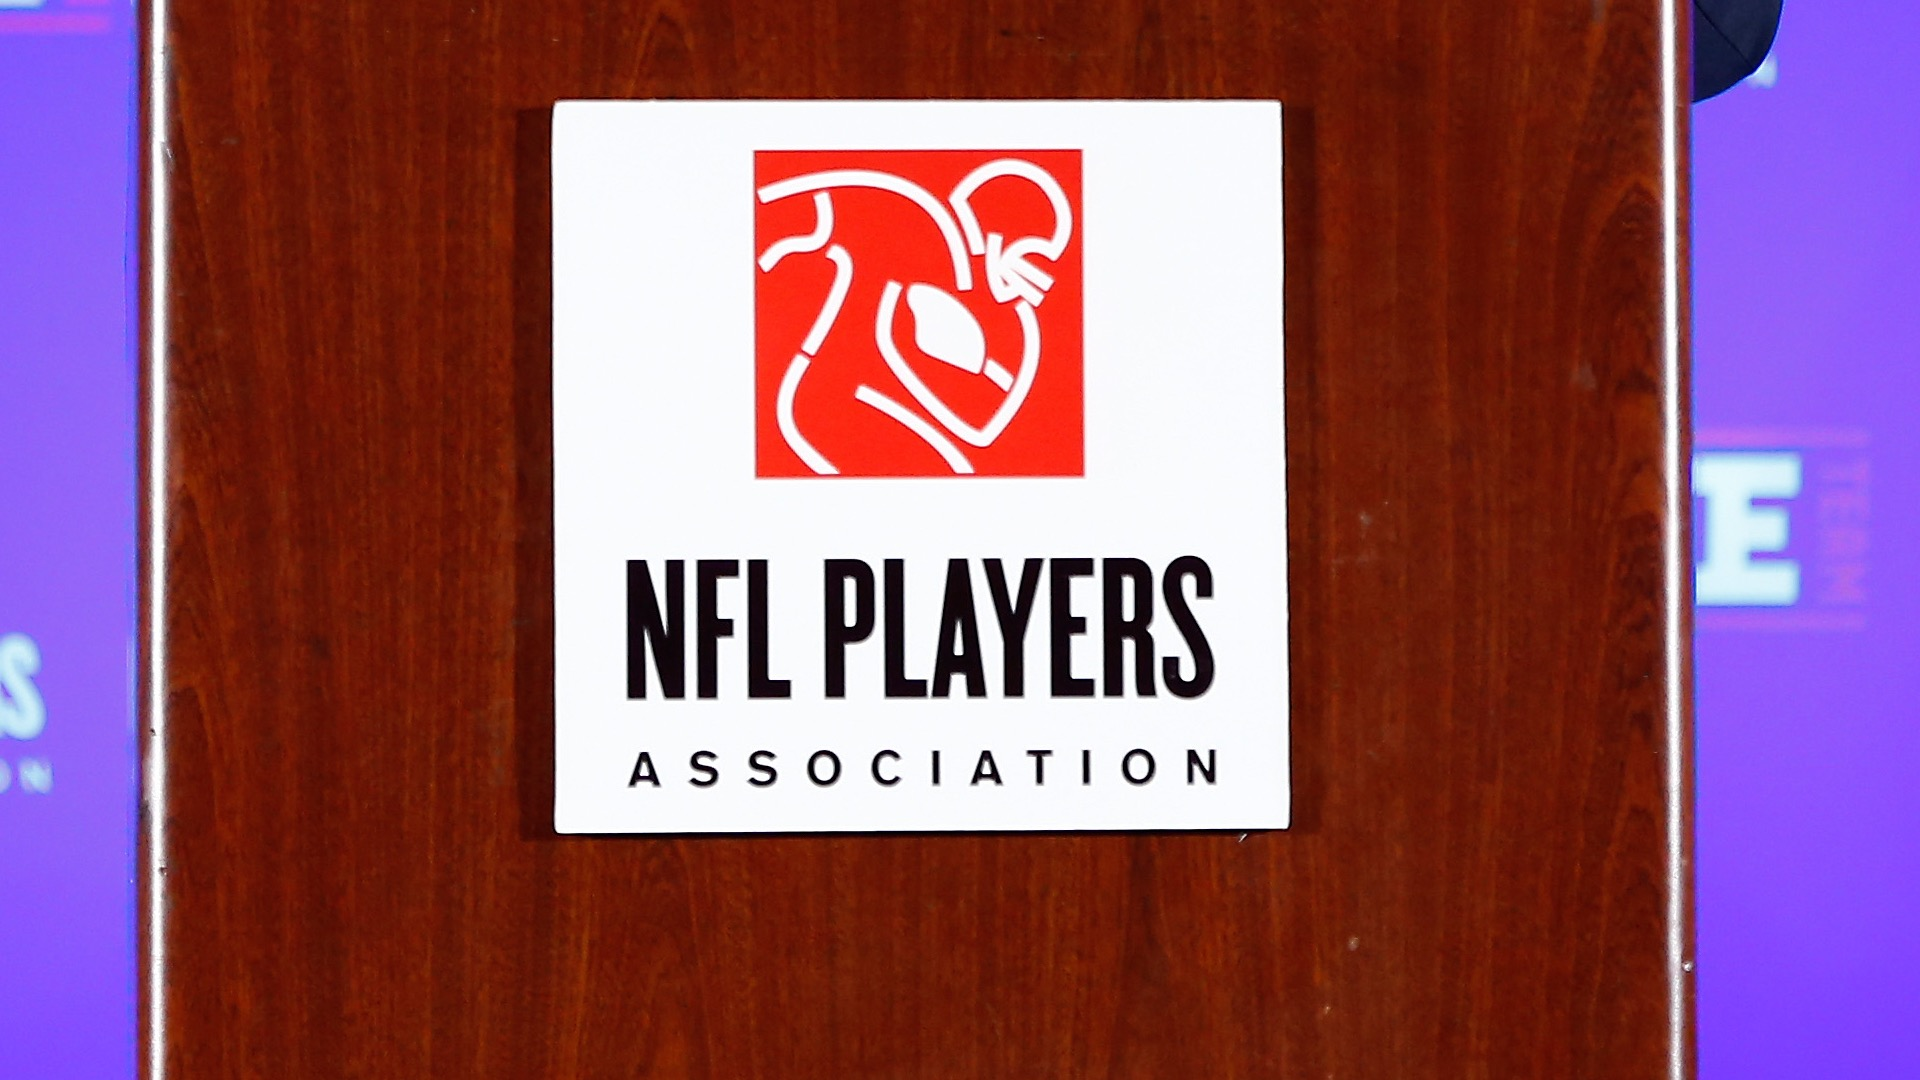 The NFL Players Association (NFLPA) played down the possibility of an expanded 18-game season.